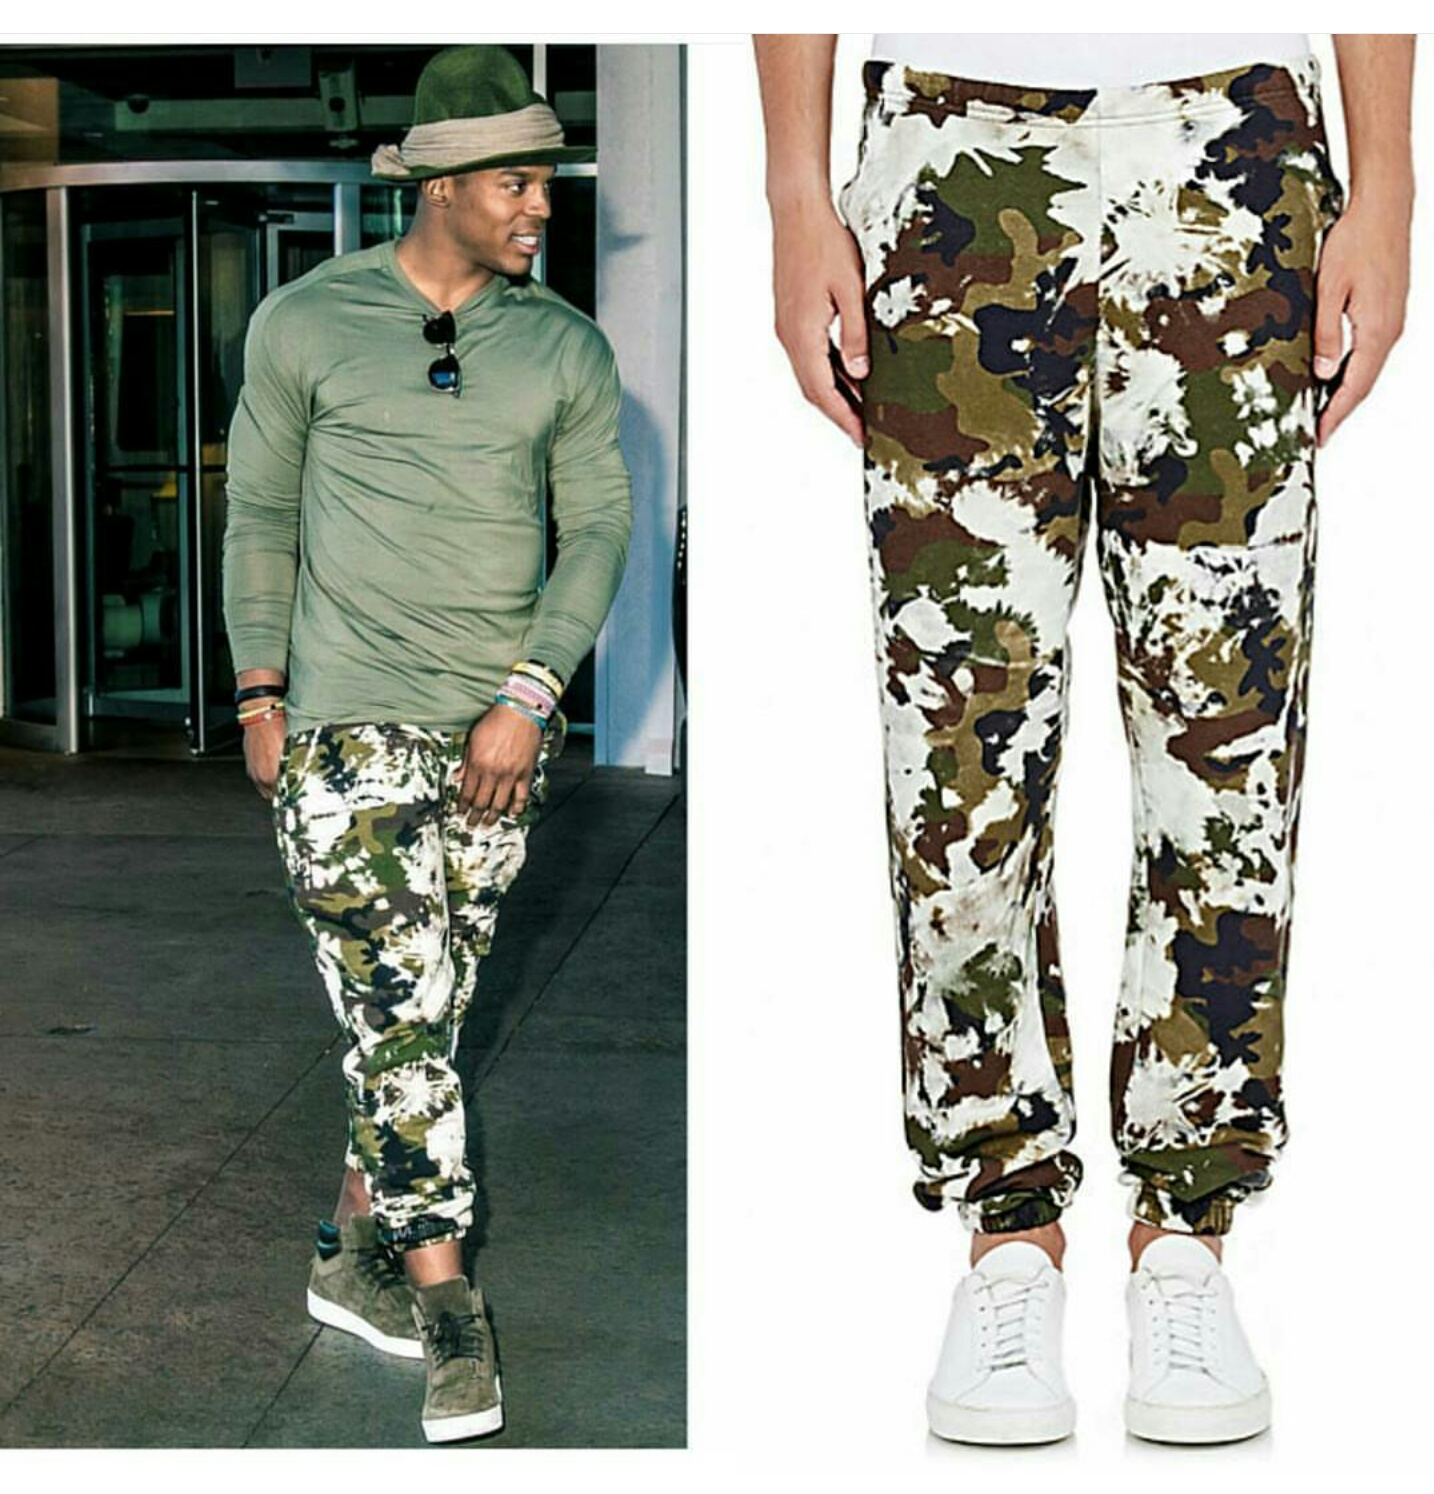 STYLE: Cam Newton's Instagram Off White Camouflage Sweatpants